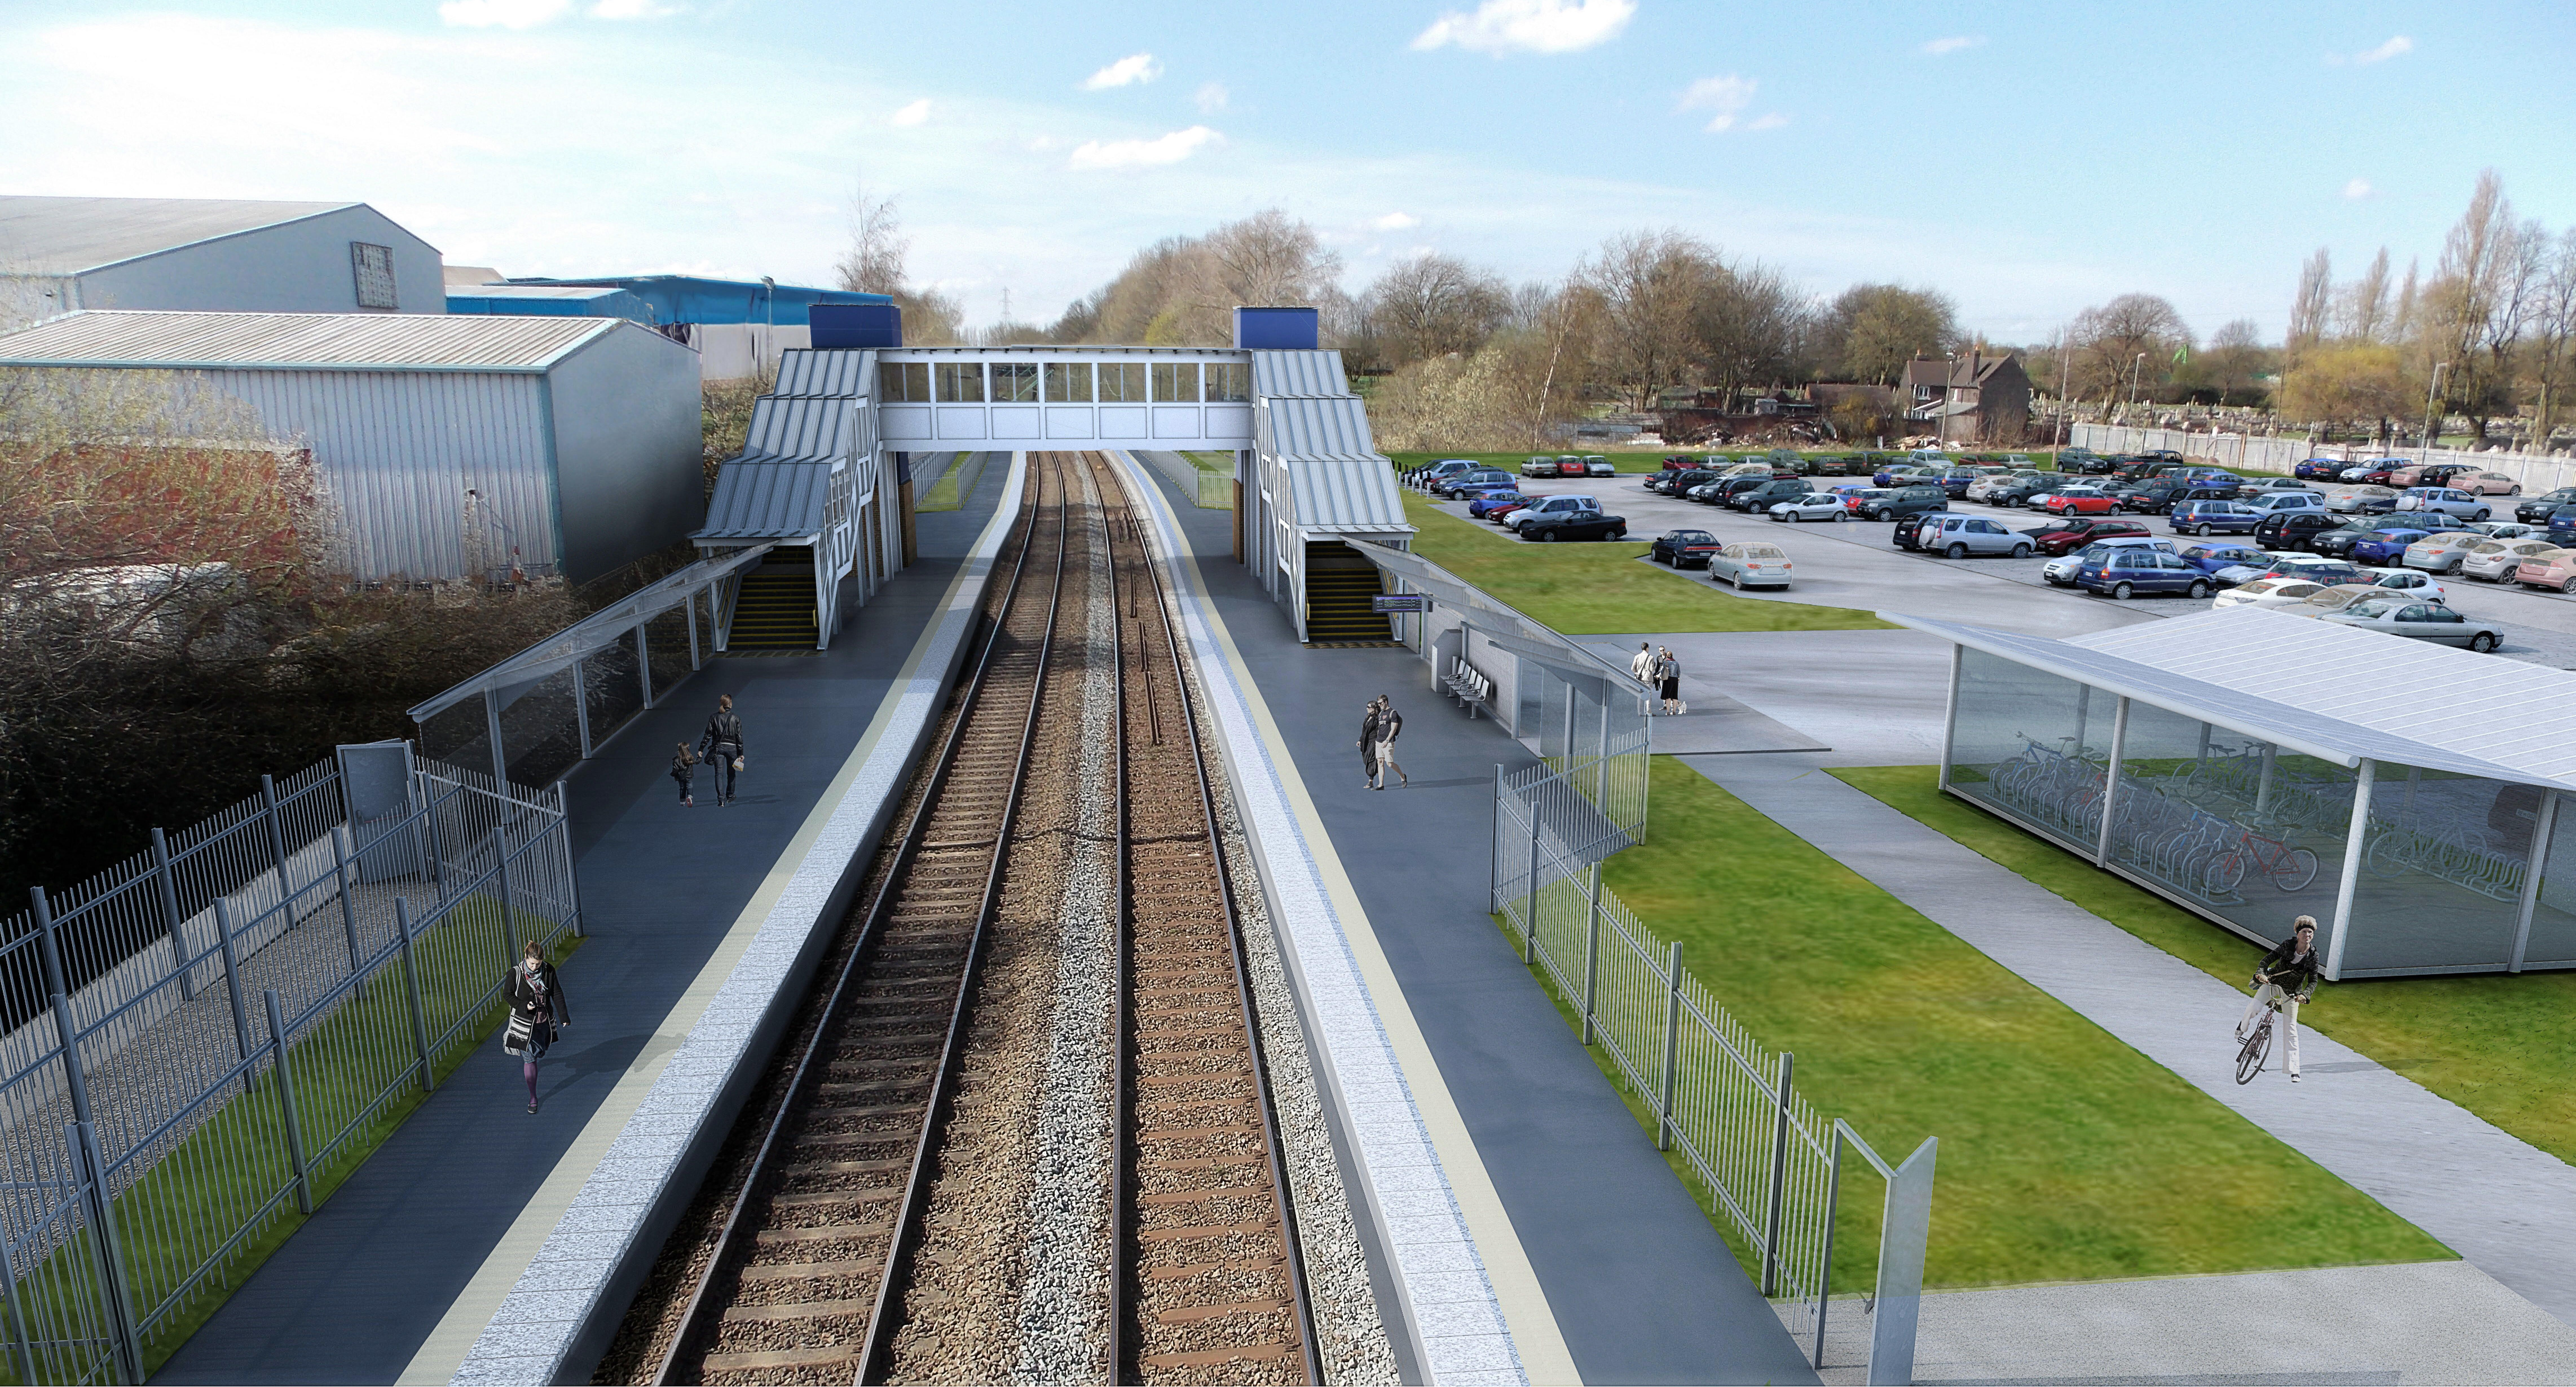 Passenger rail services planned to re-connect Walsall and Wolverhampton